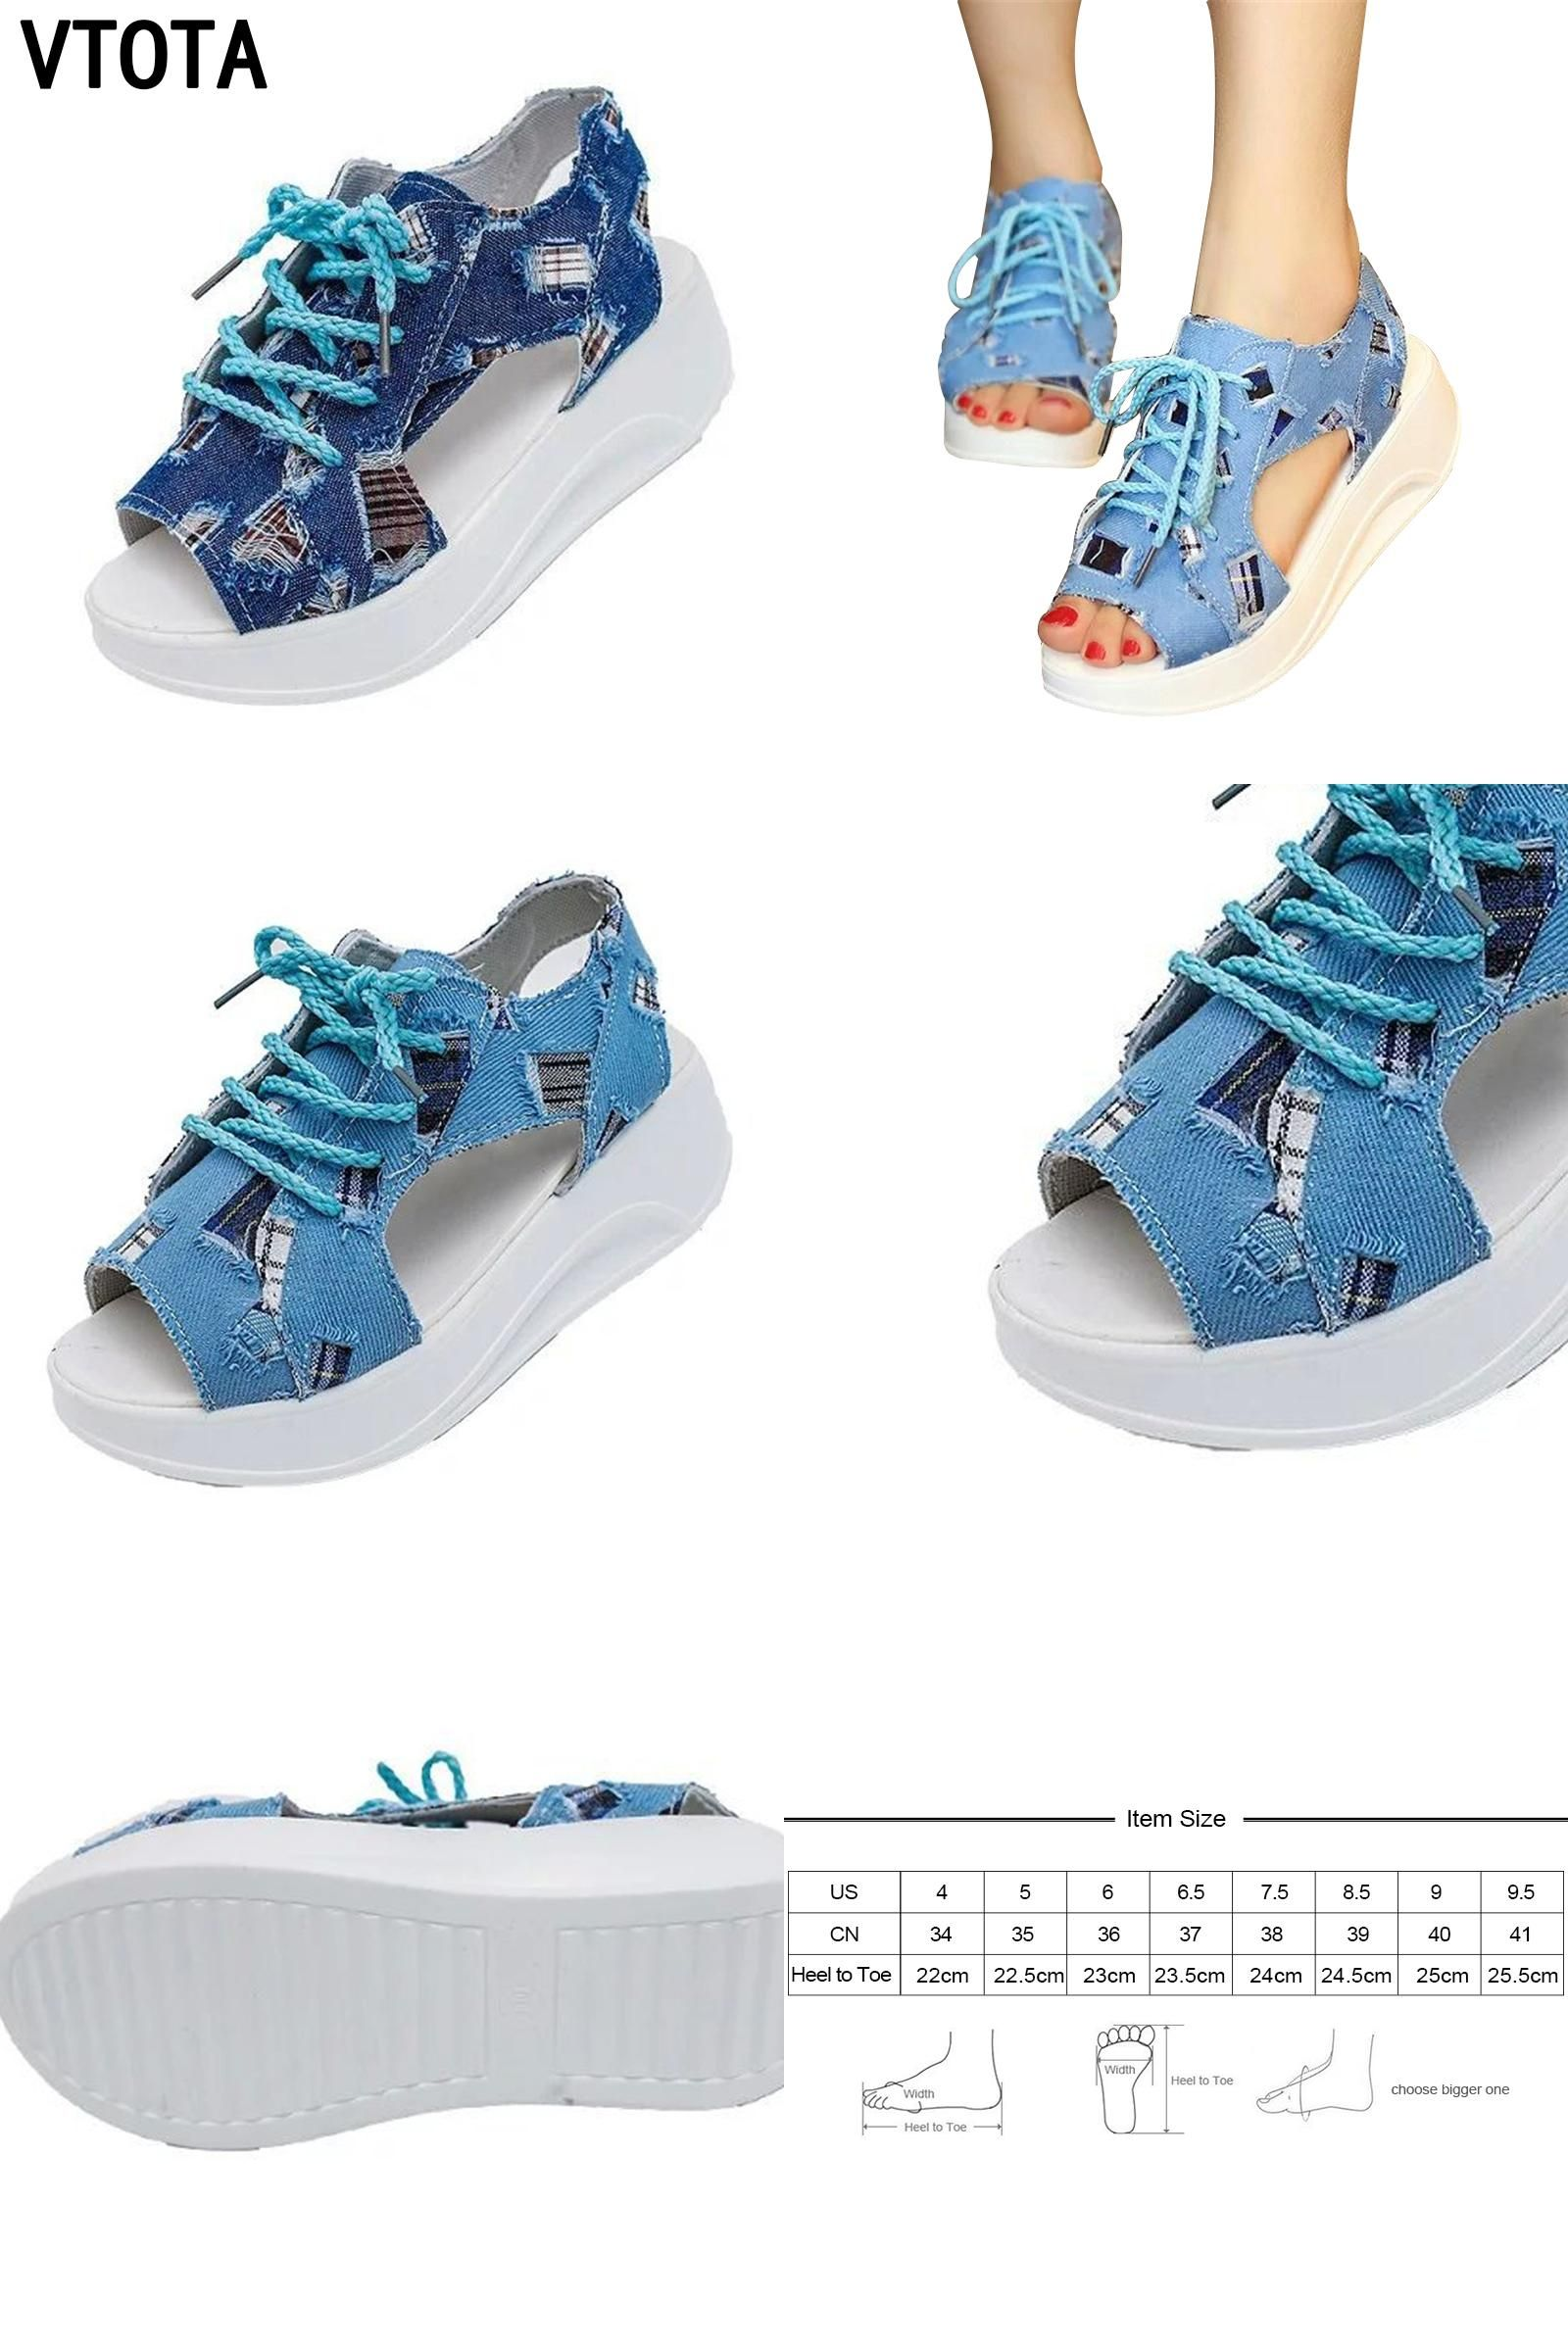 Visit to Buy  VTOTA Fashion Women Sandals Denim Summer Shoes Soft Sandals  muffin Shoes 08e922a59478